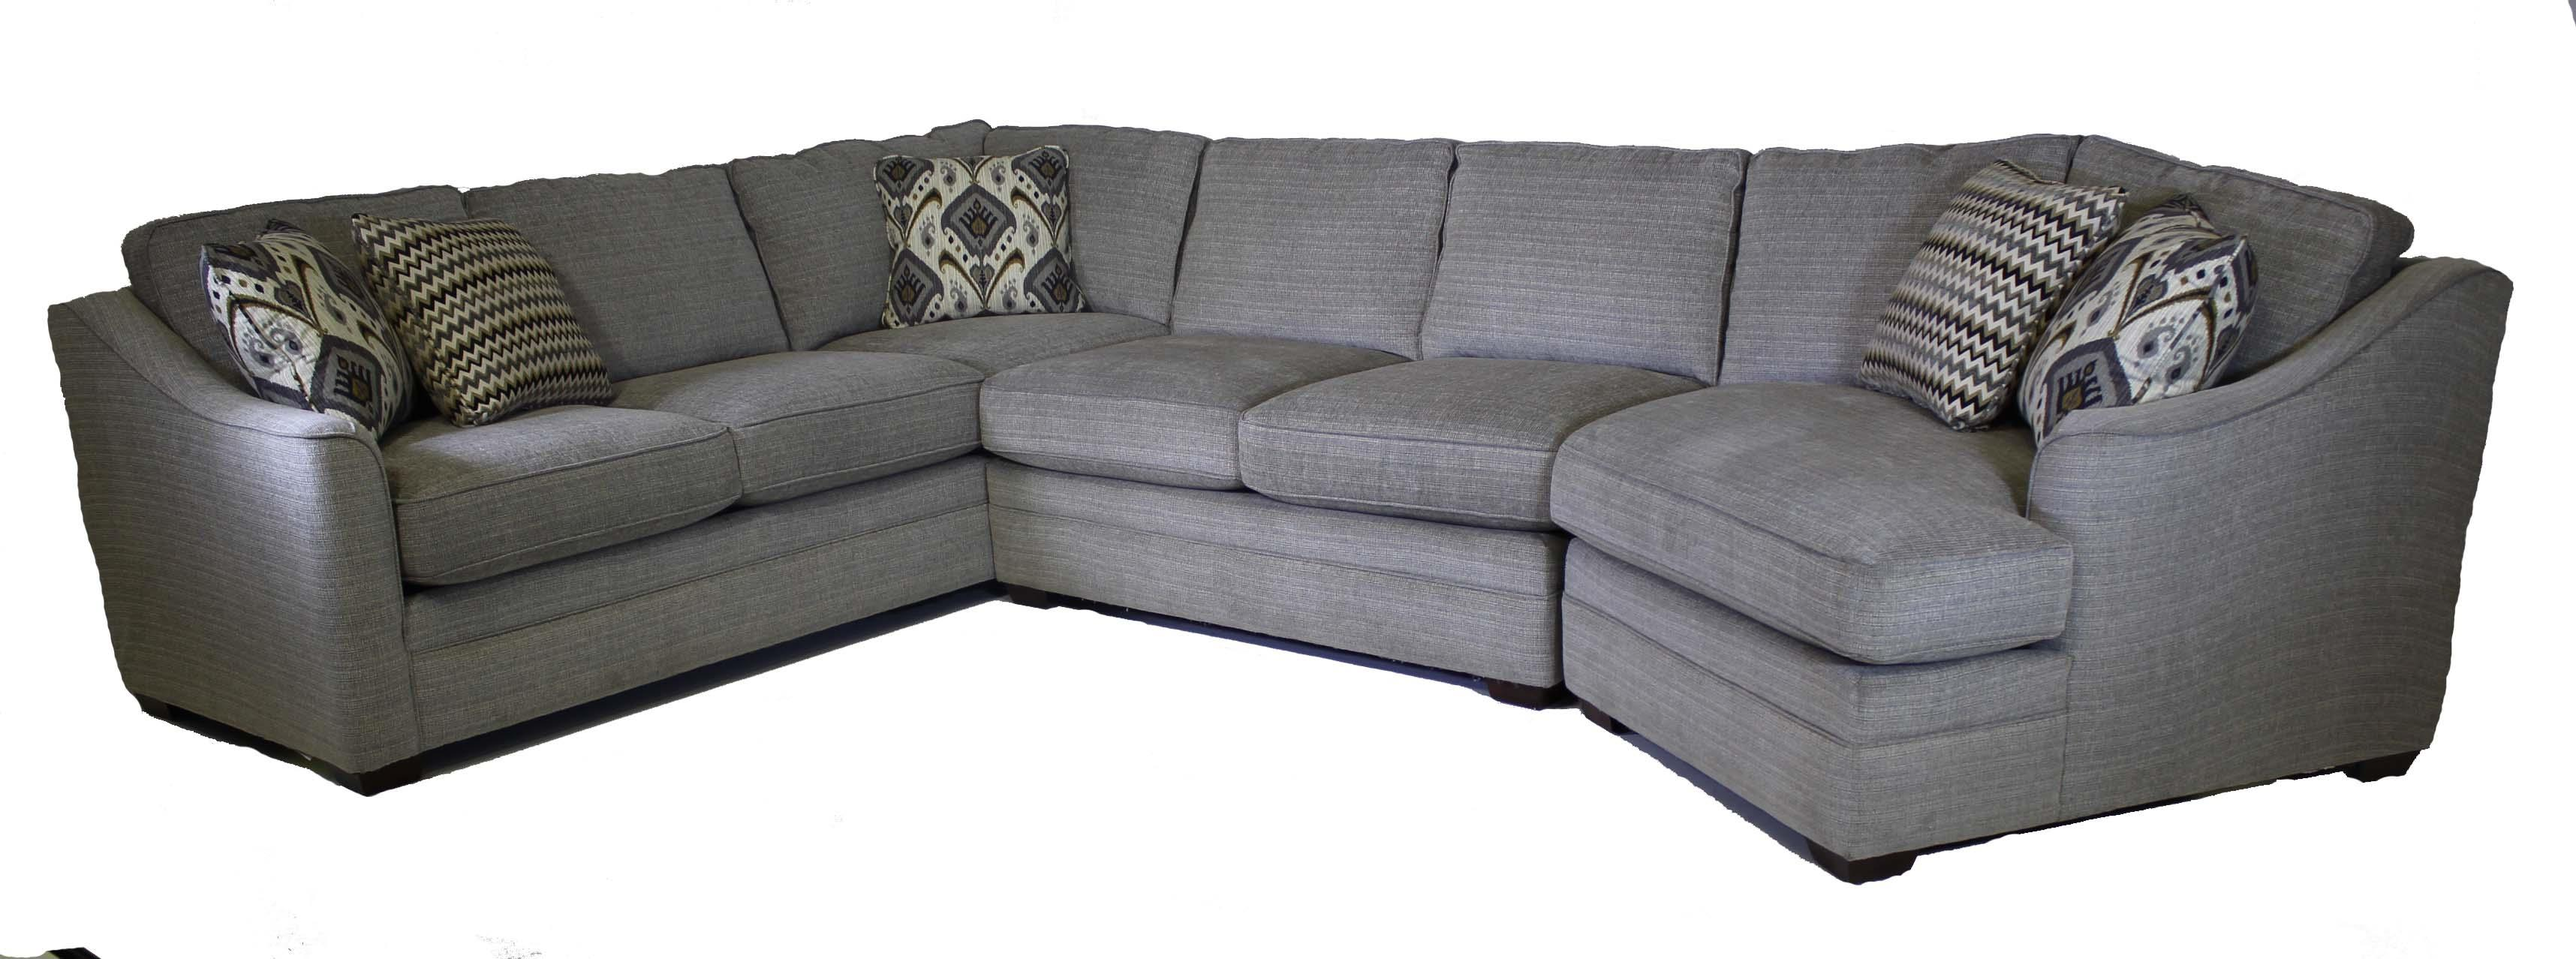 Craftmaster F9 Custom Collection 3-Piece Sectional  - Item Number: F9 Sectional